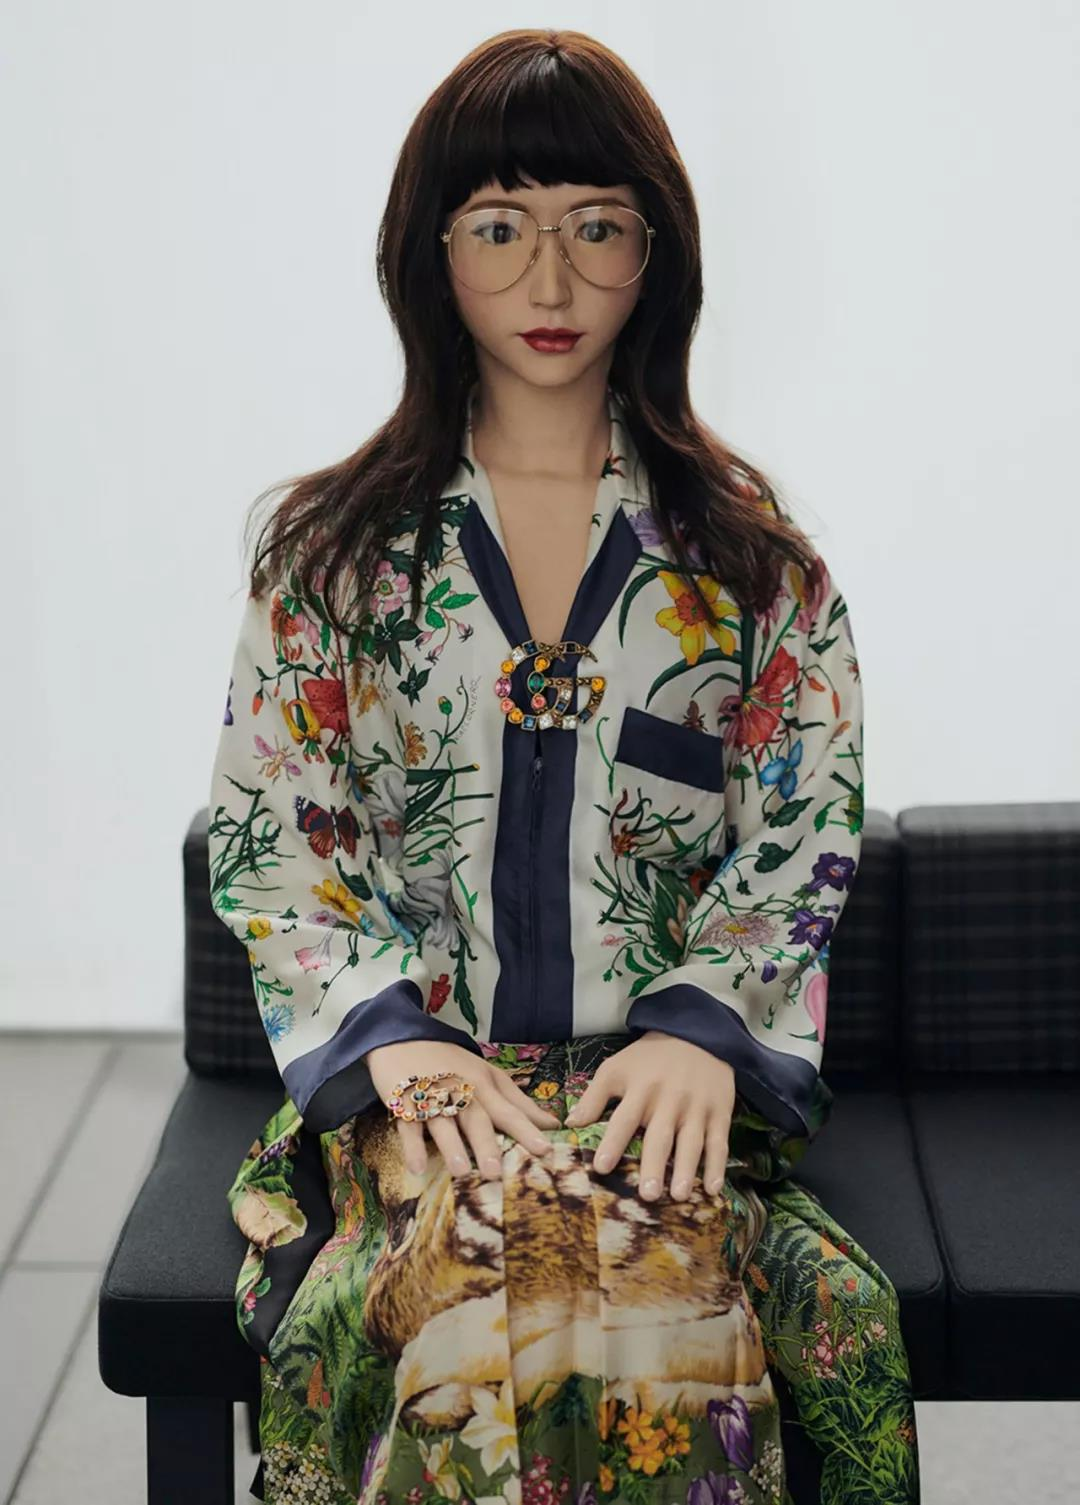 Young Asian female robot dressed in flowery robe and hipster glasses